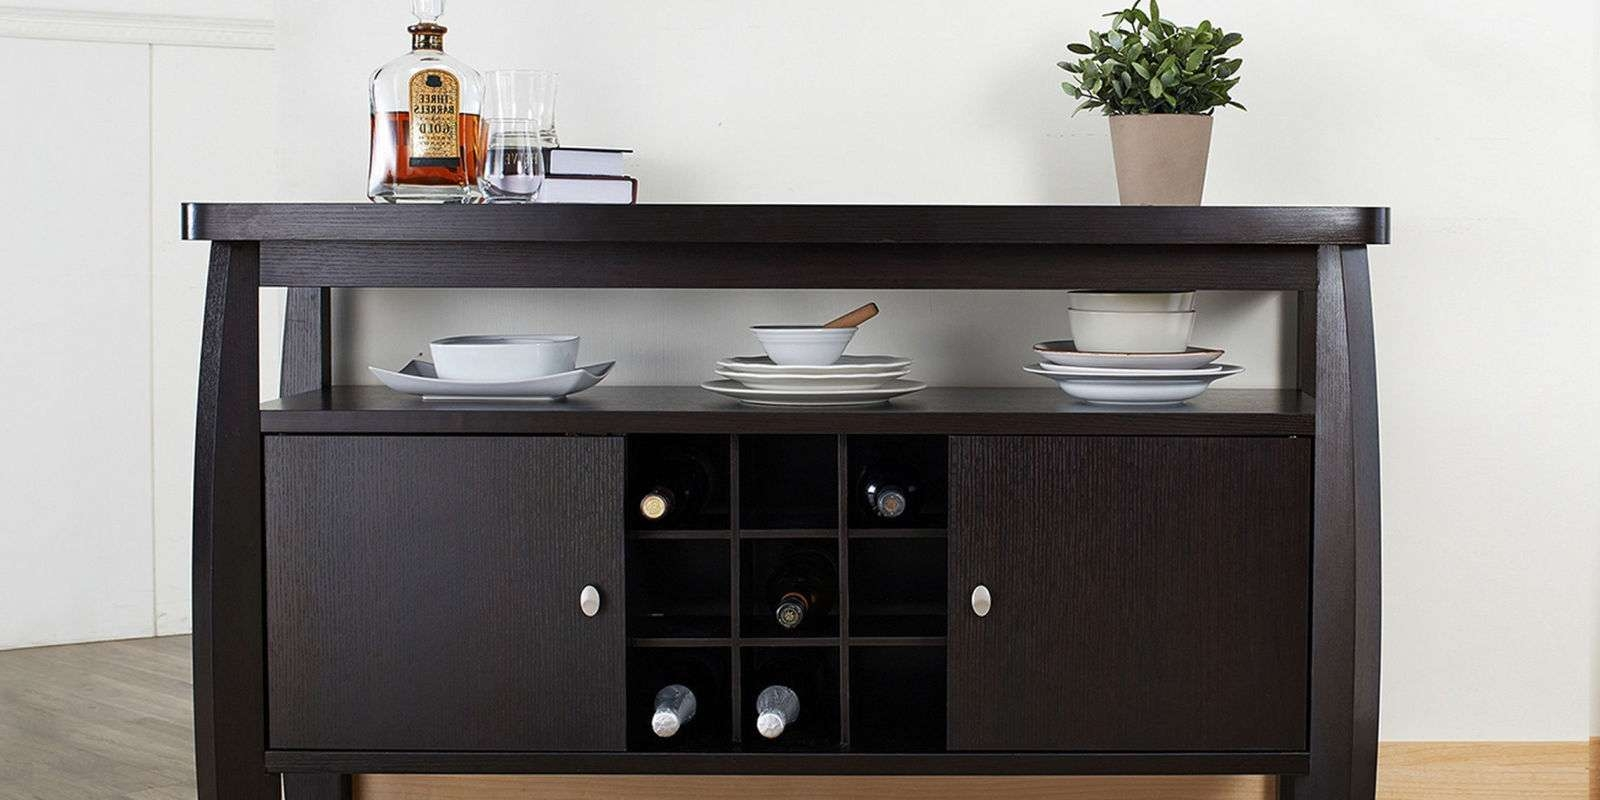 11 Best Sideboards And Buffets In 2018 – Reviews Of Sideboards Throughout Sideboards Tables (View 1 of 20)